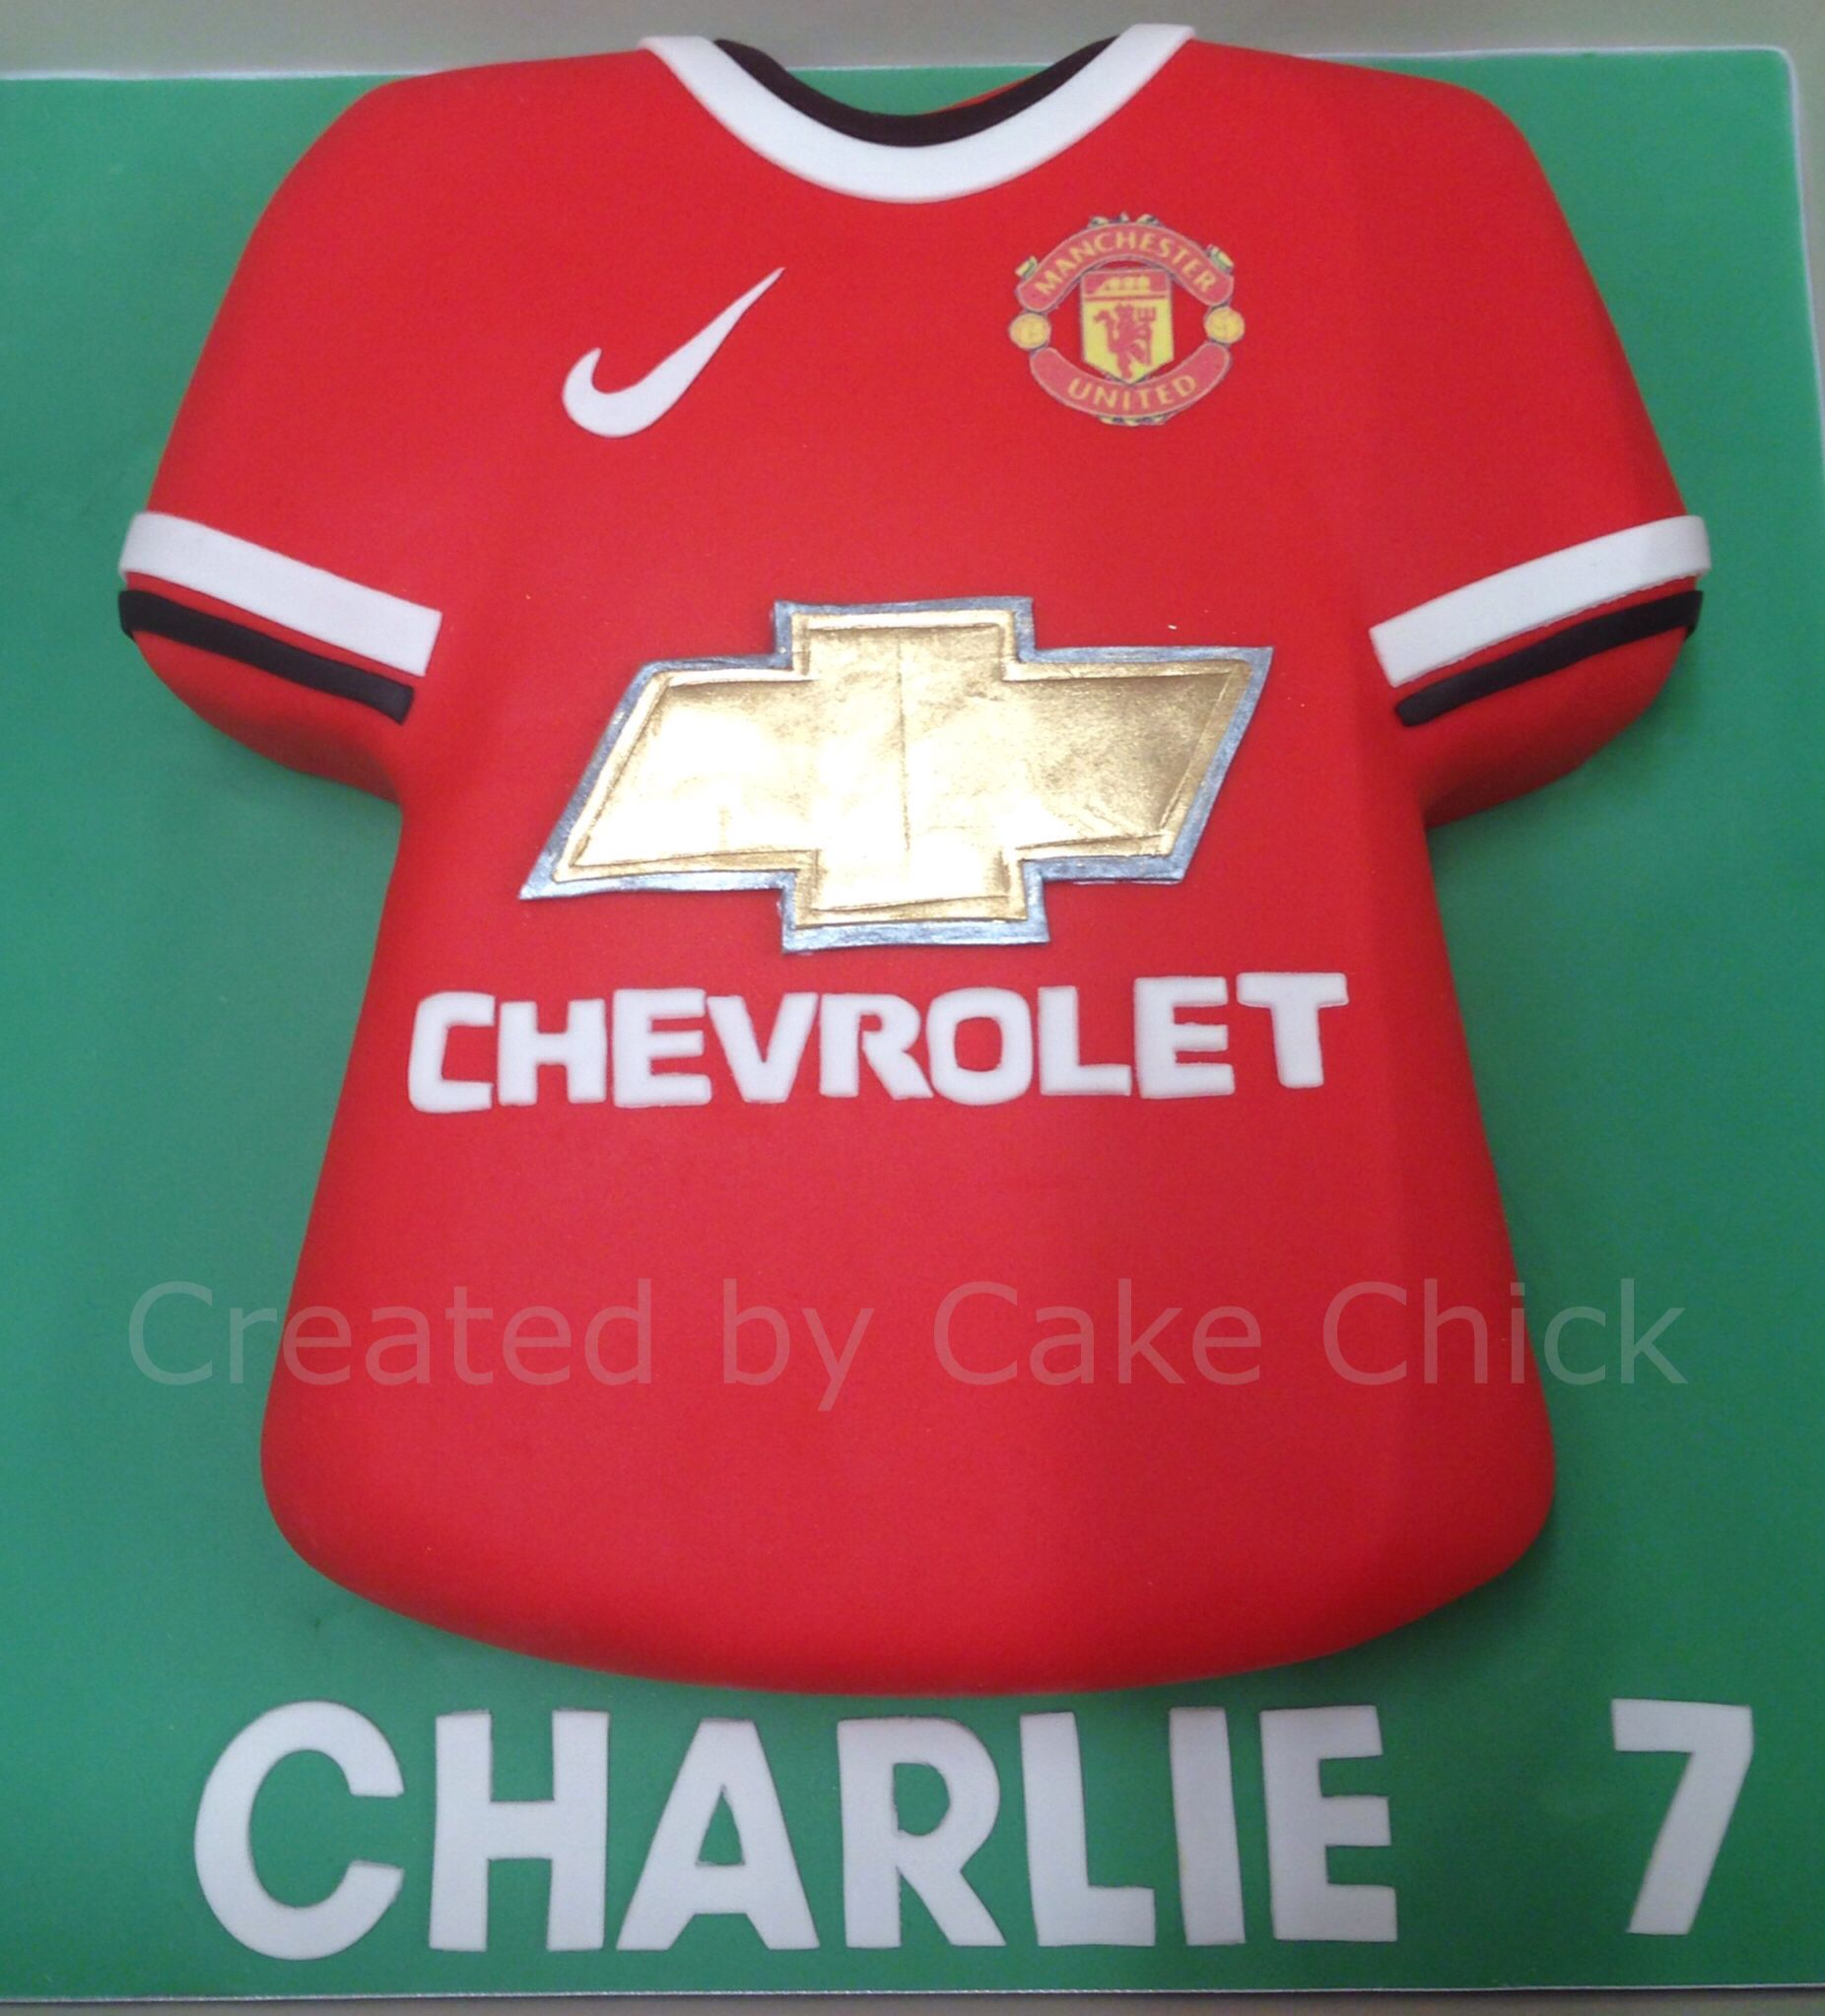 Manchester United Man Utd Cake With Images Shirt Cake Manchester United Birthday Cake Cake Shirts